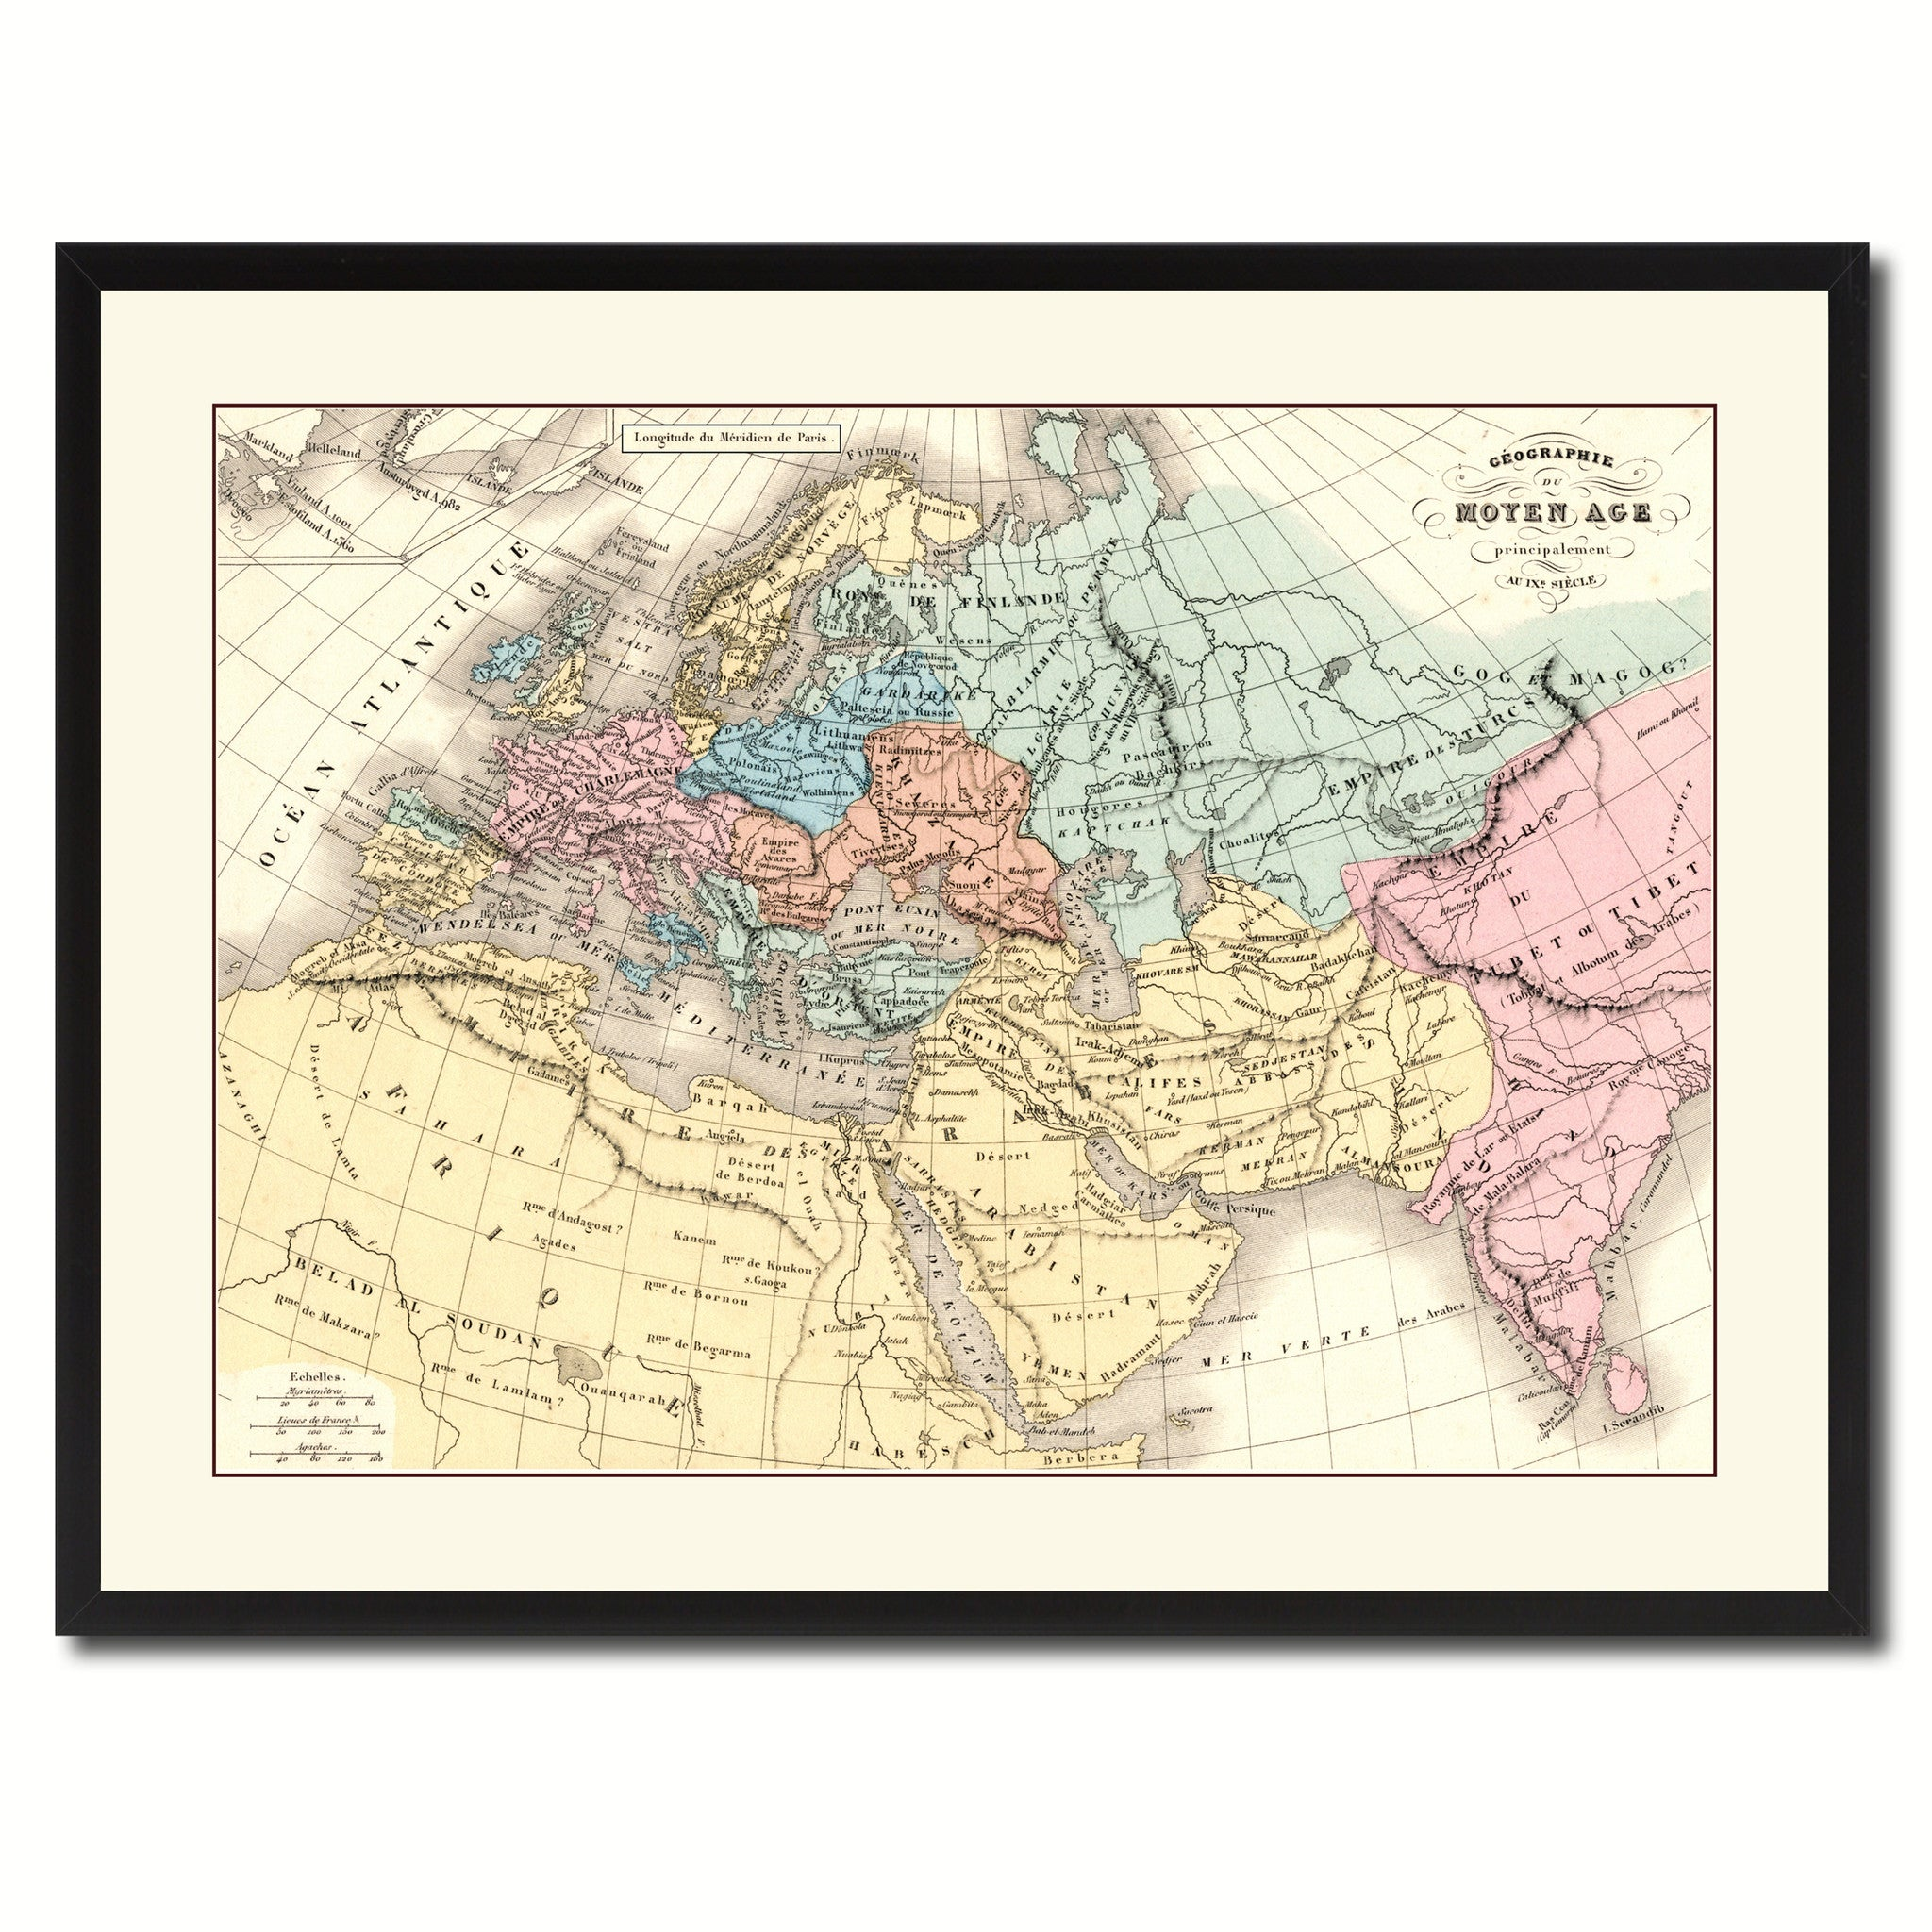 Europe In The Middle Ages Crusades Vintage Antique Map Wall Art ...